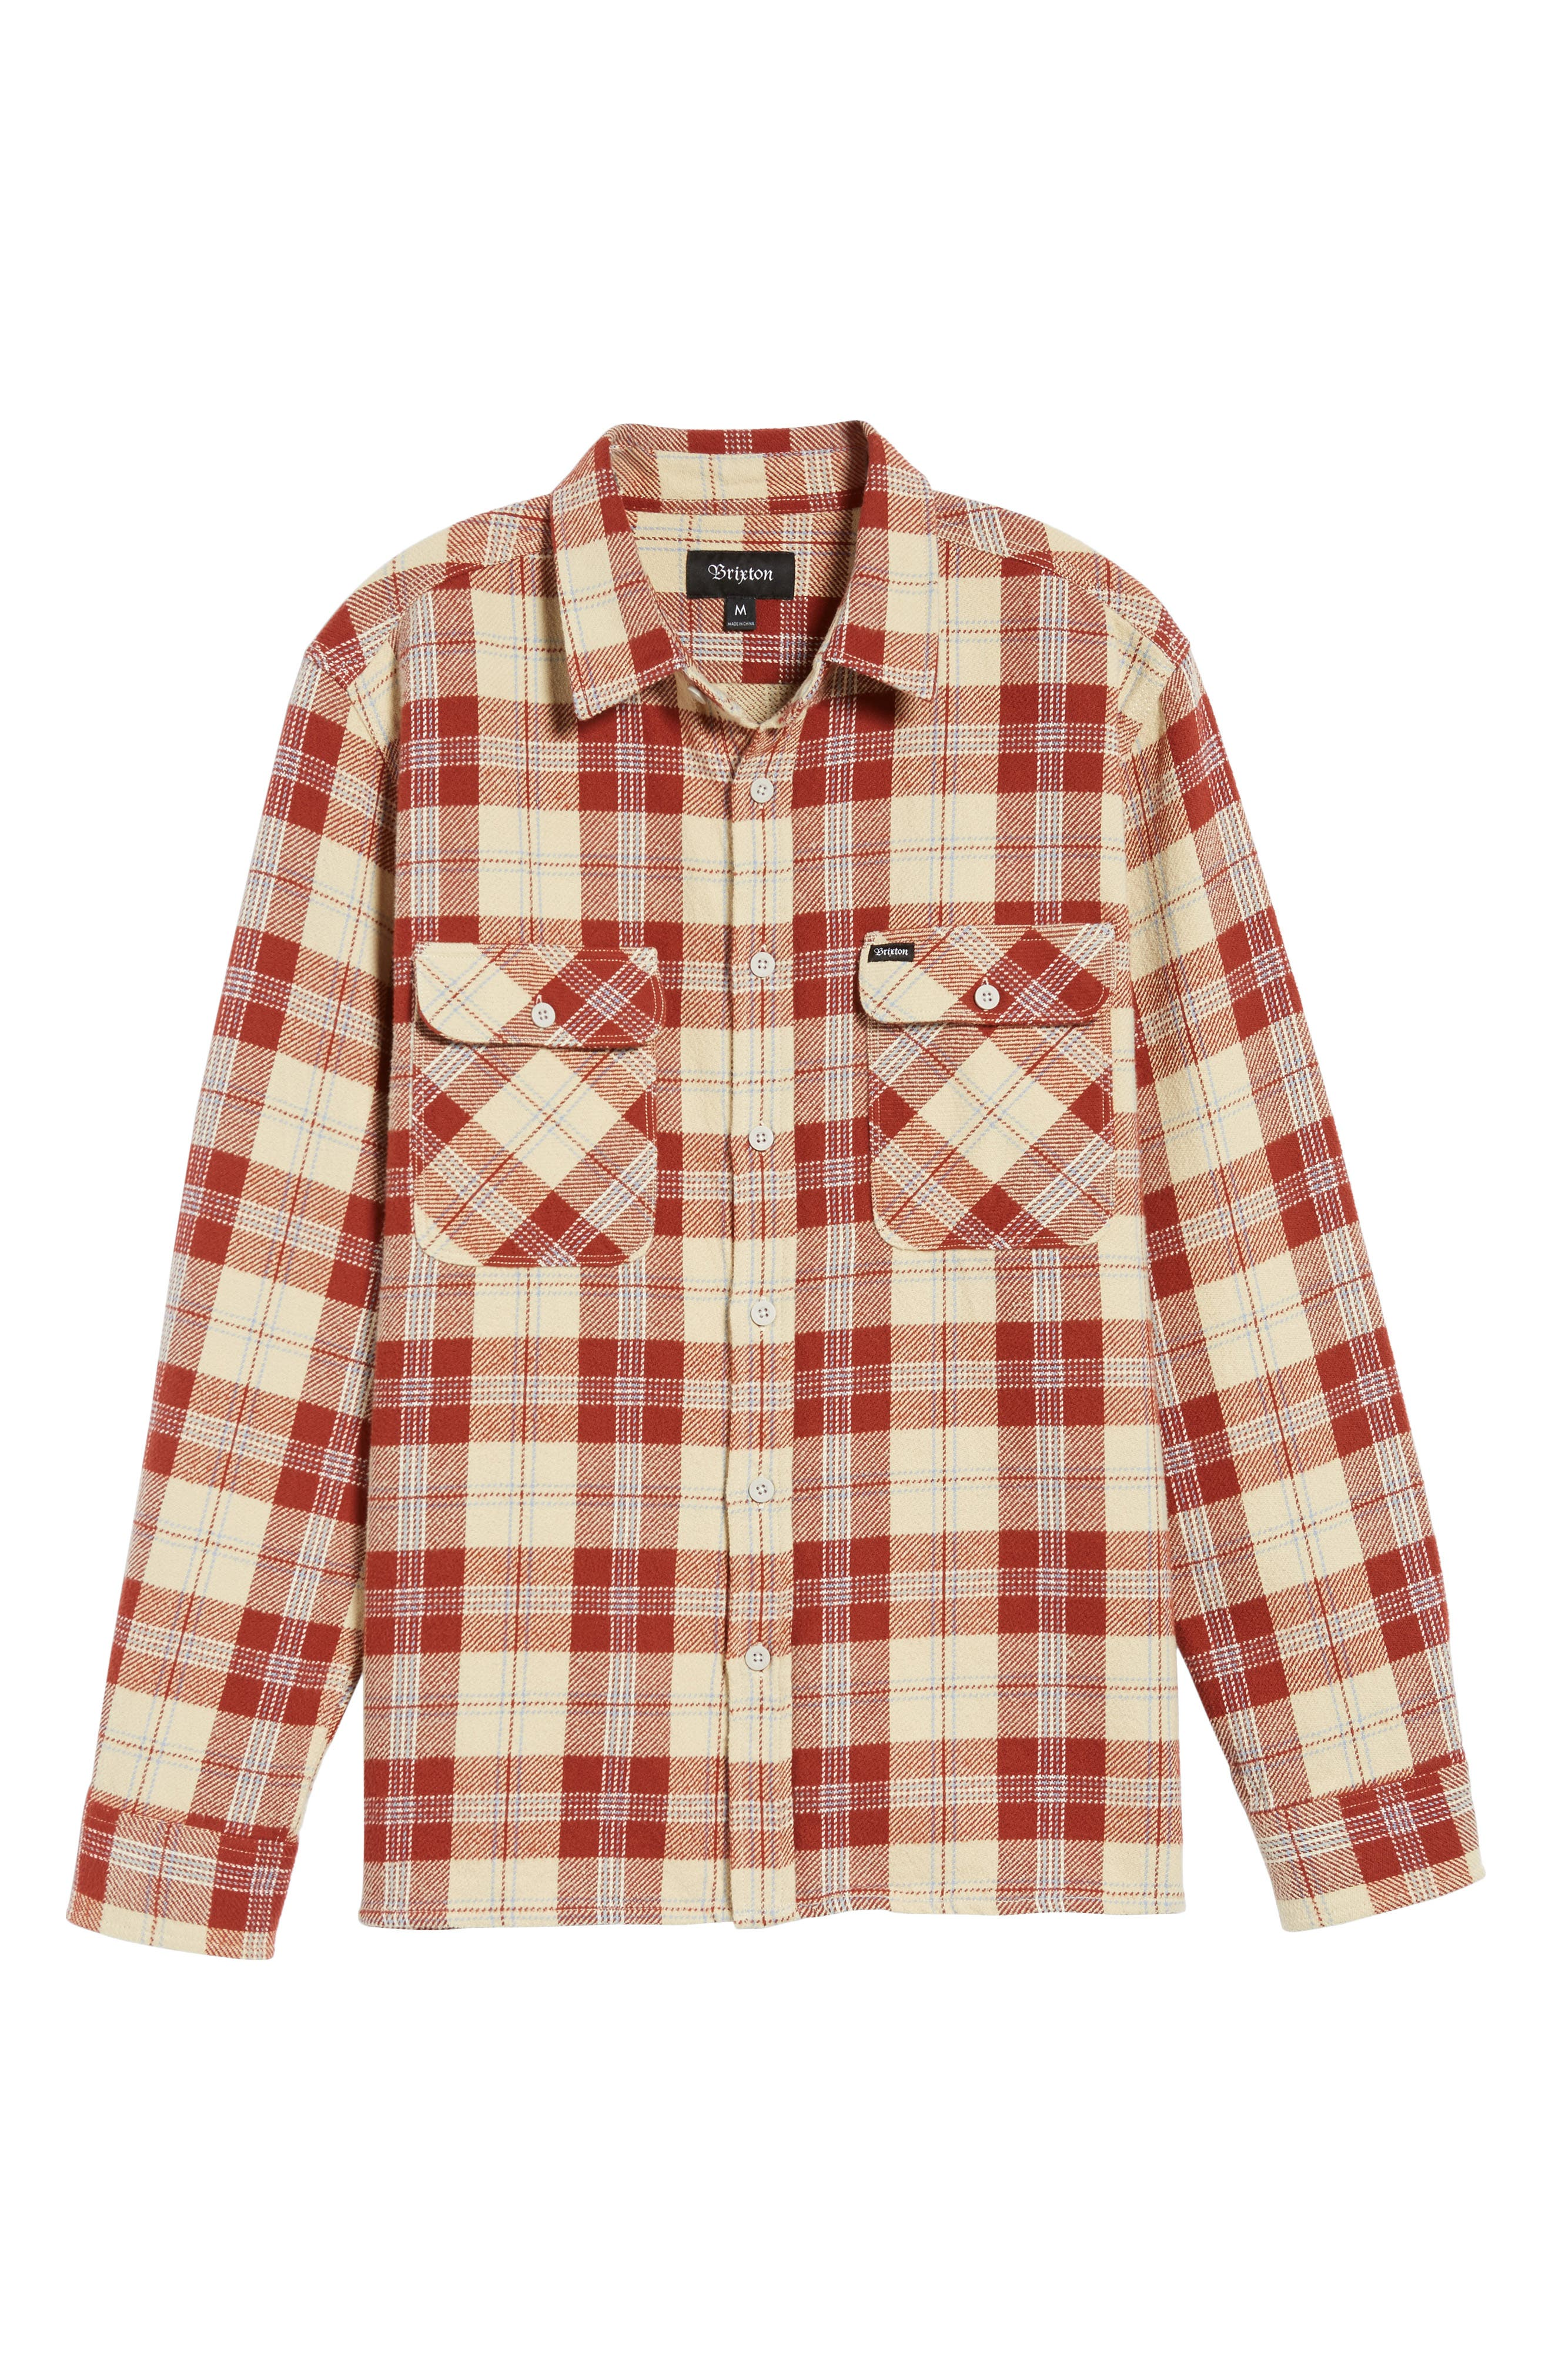 'Archie' Plaid Flannel Shirt,                         Main,                         color, Brick